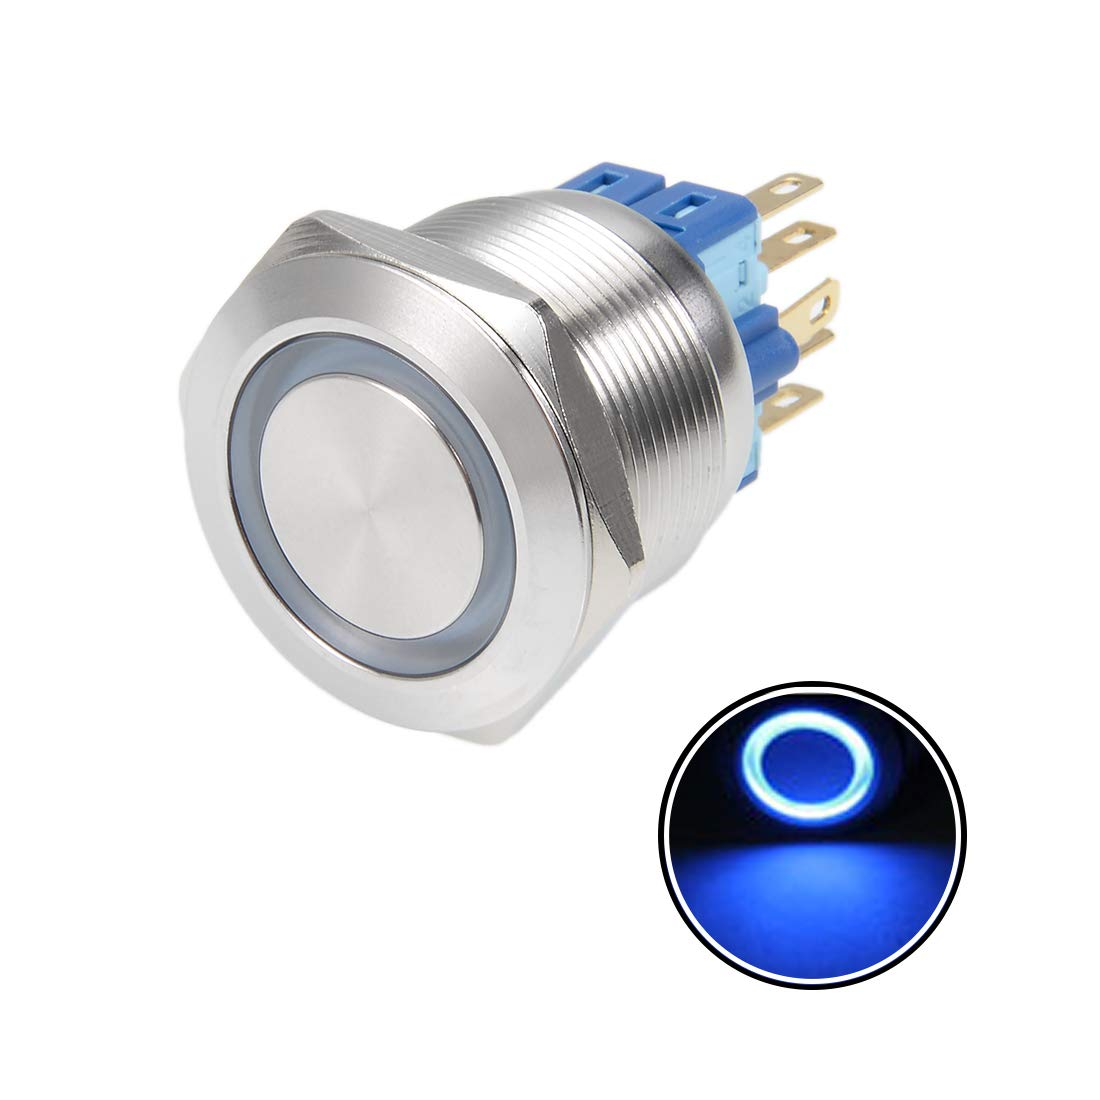 Momentary Push Button Switch 25mm Mounting Dia 5A 12V Blue LED Light Flat Head